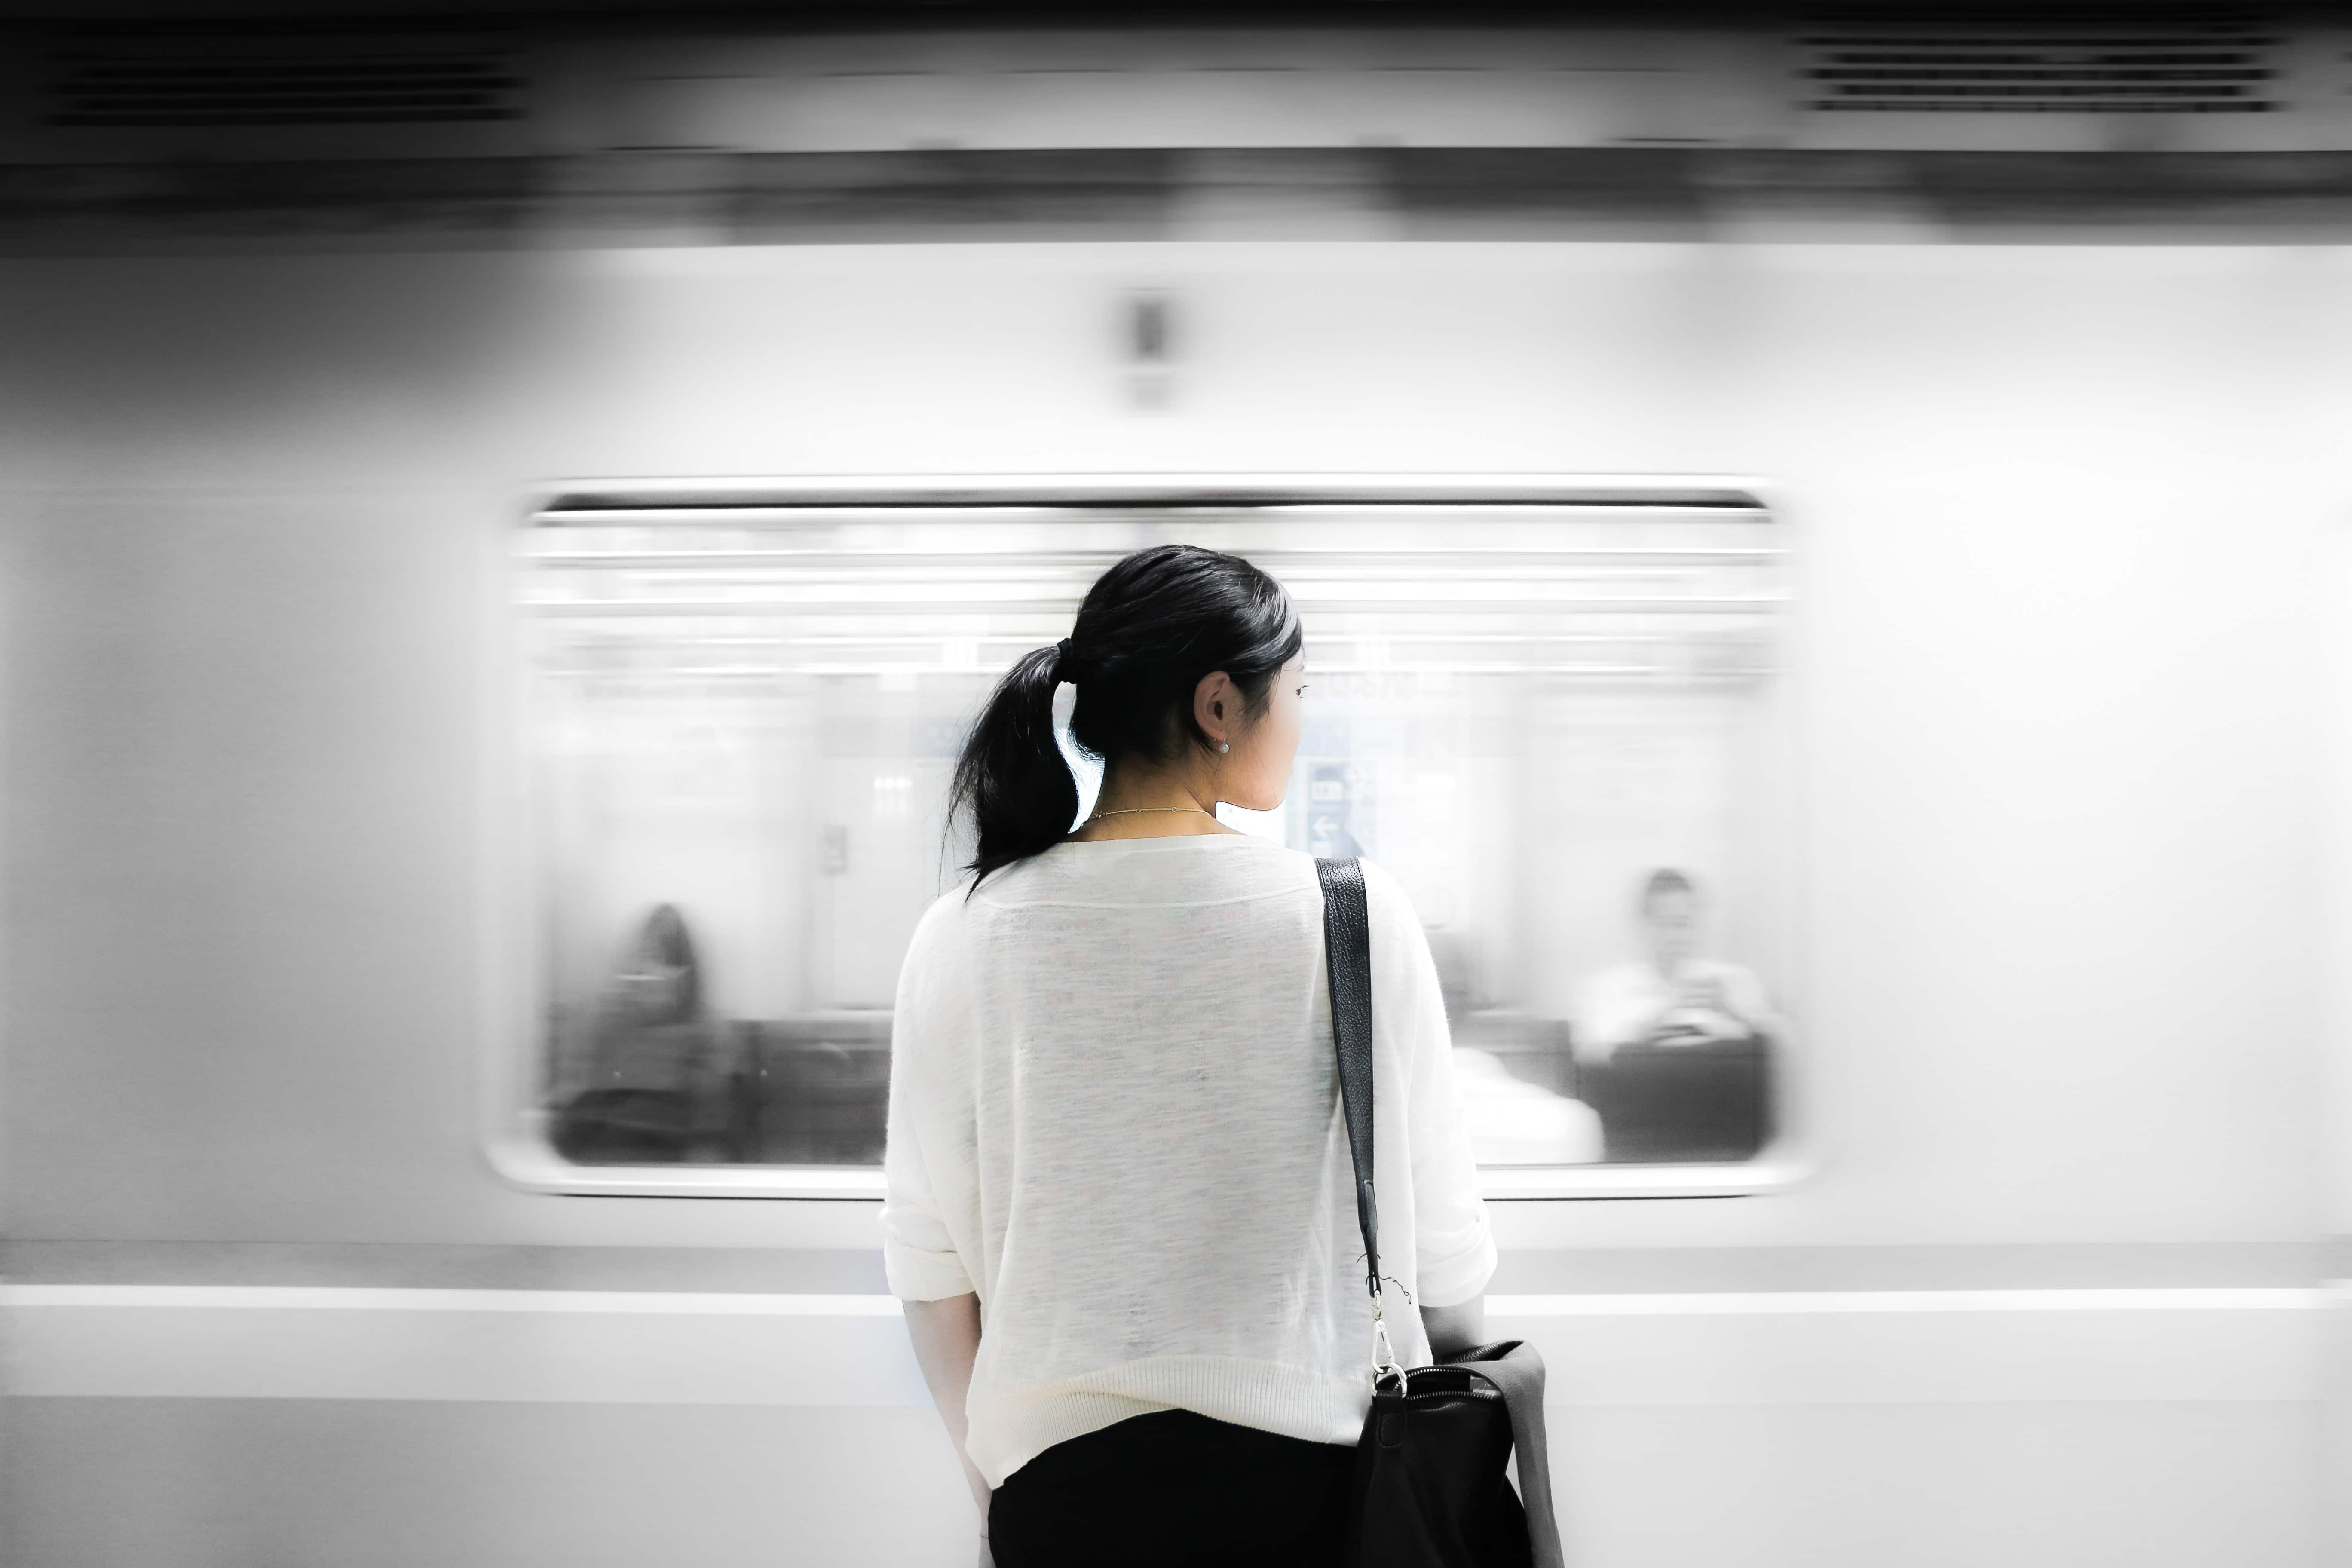 japanese woman waiting for the train and learning how to prepare for a trip to japan